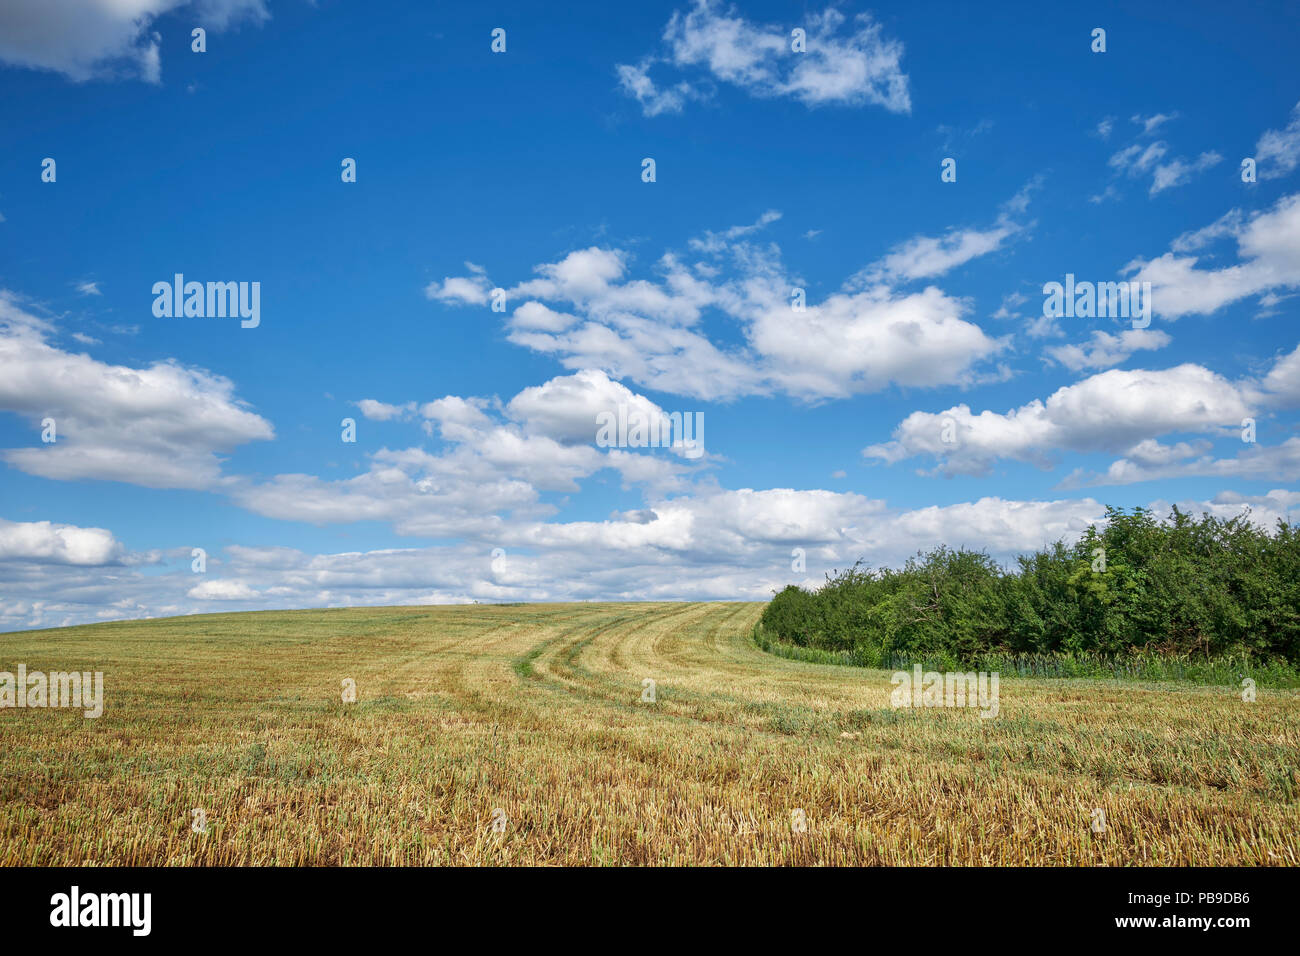 Harvested wheat field with cloudy sky, district Konstanz, Baden-Württemberg, Germany - Stock Image